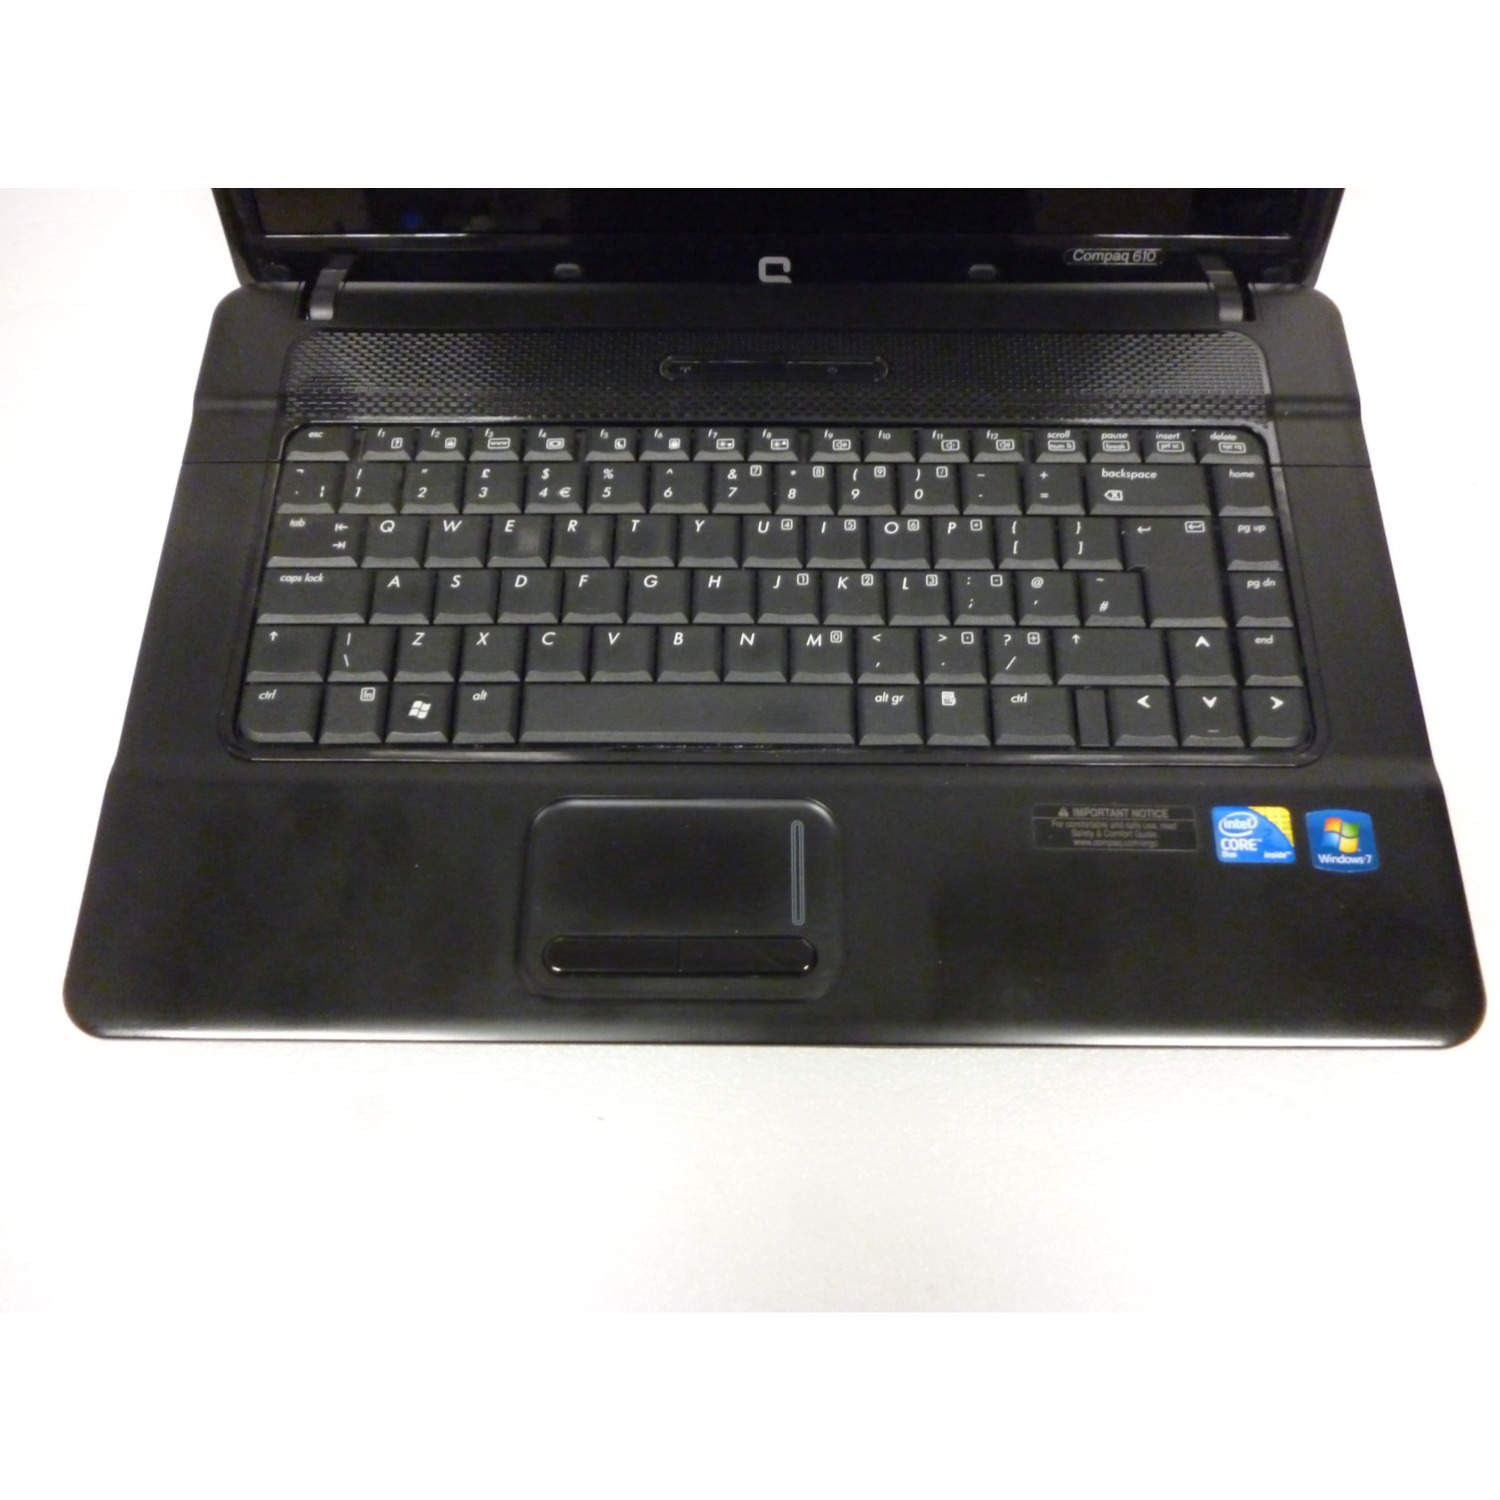 compaq 610 win 7 drivers u2022 u2022 sfb rh southfloridabusinessnetwork icu HP Compaq 610 Drivers HP Compaq 610 Battery